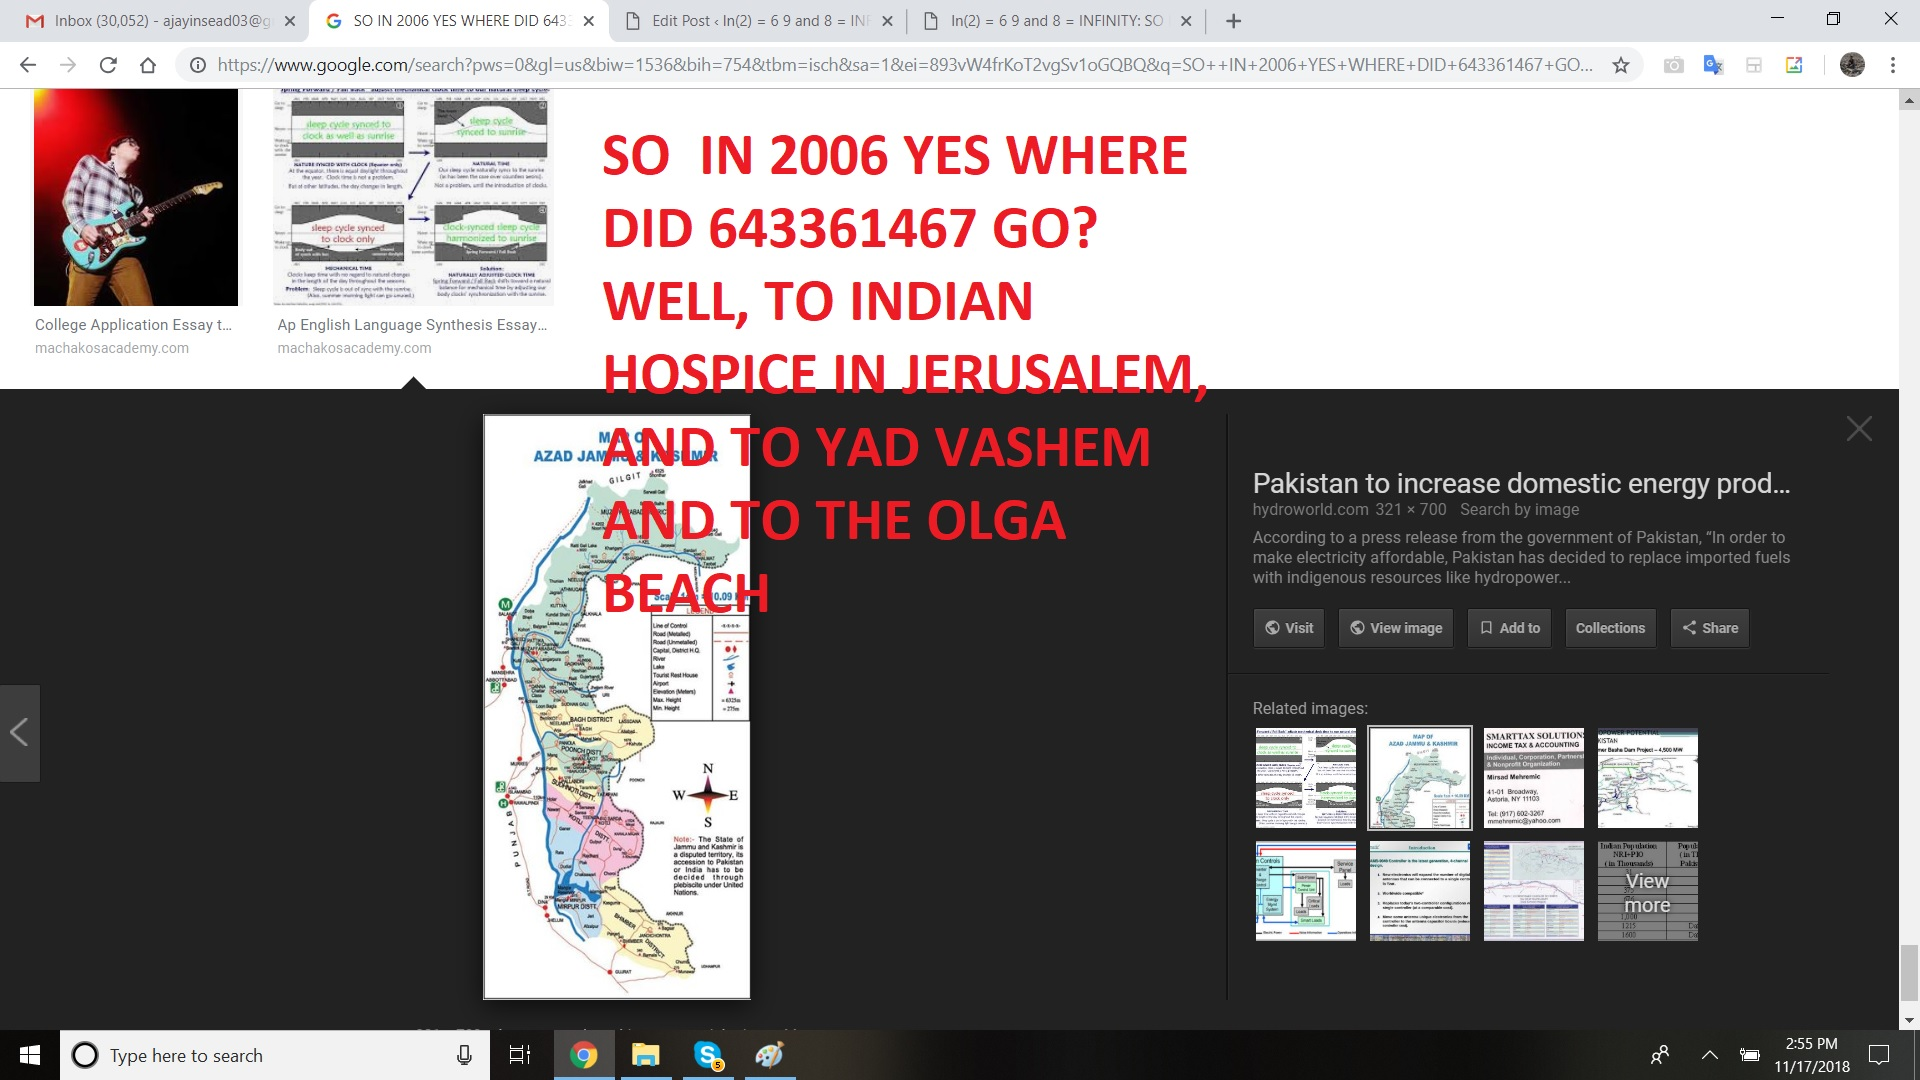 SO IN 2006 YES WHERE DID 643361467 GO WELL, TO INDIAN HOSPICE IN JERUSALEM, AND TO YAD VASHEM AND TO THE OLGA BEACH